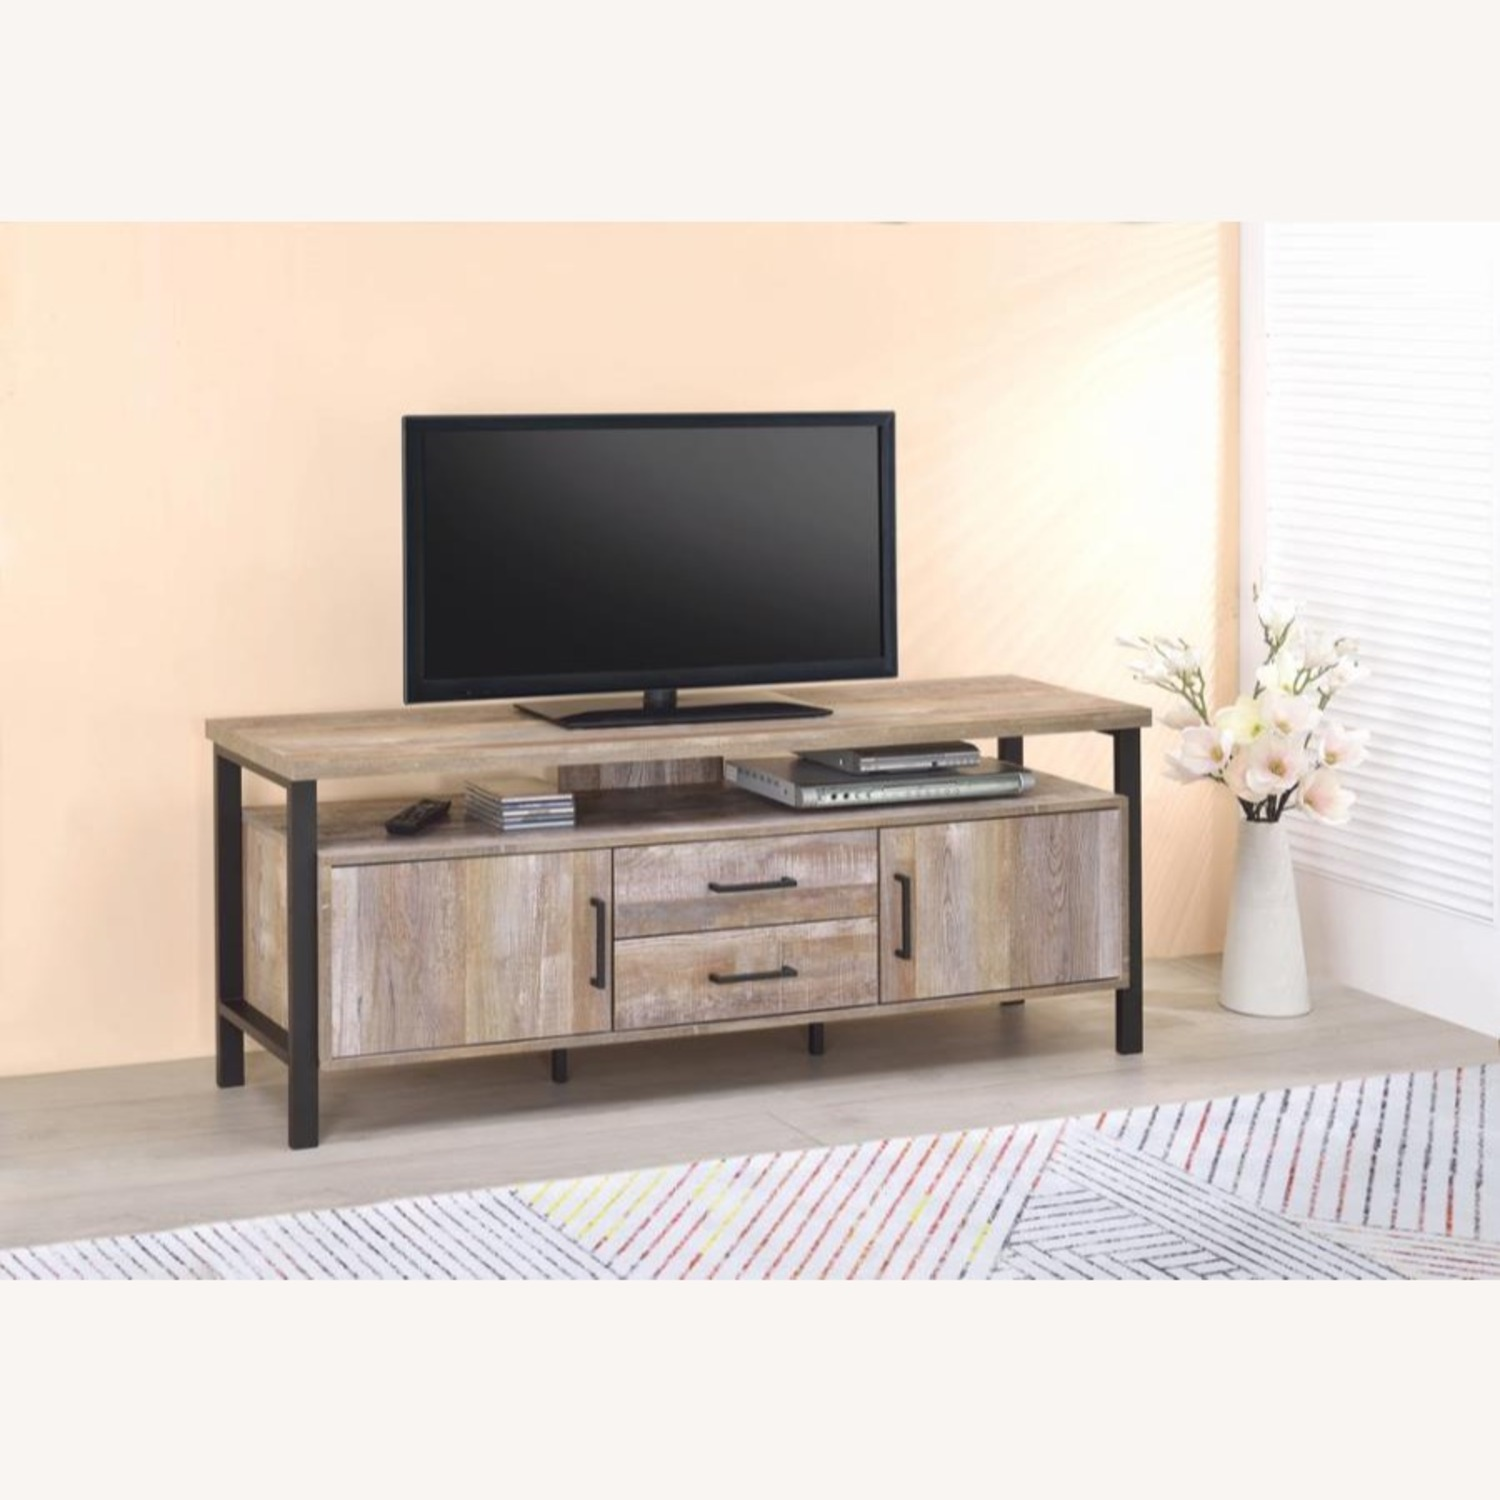 TV Console In Weathered Oak W/ Storage & Shelves - image-6